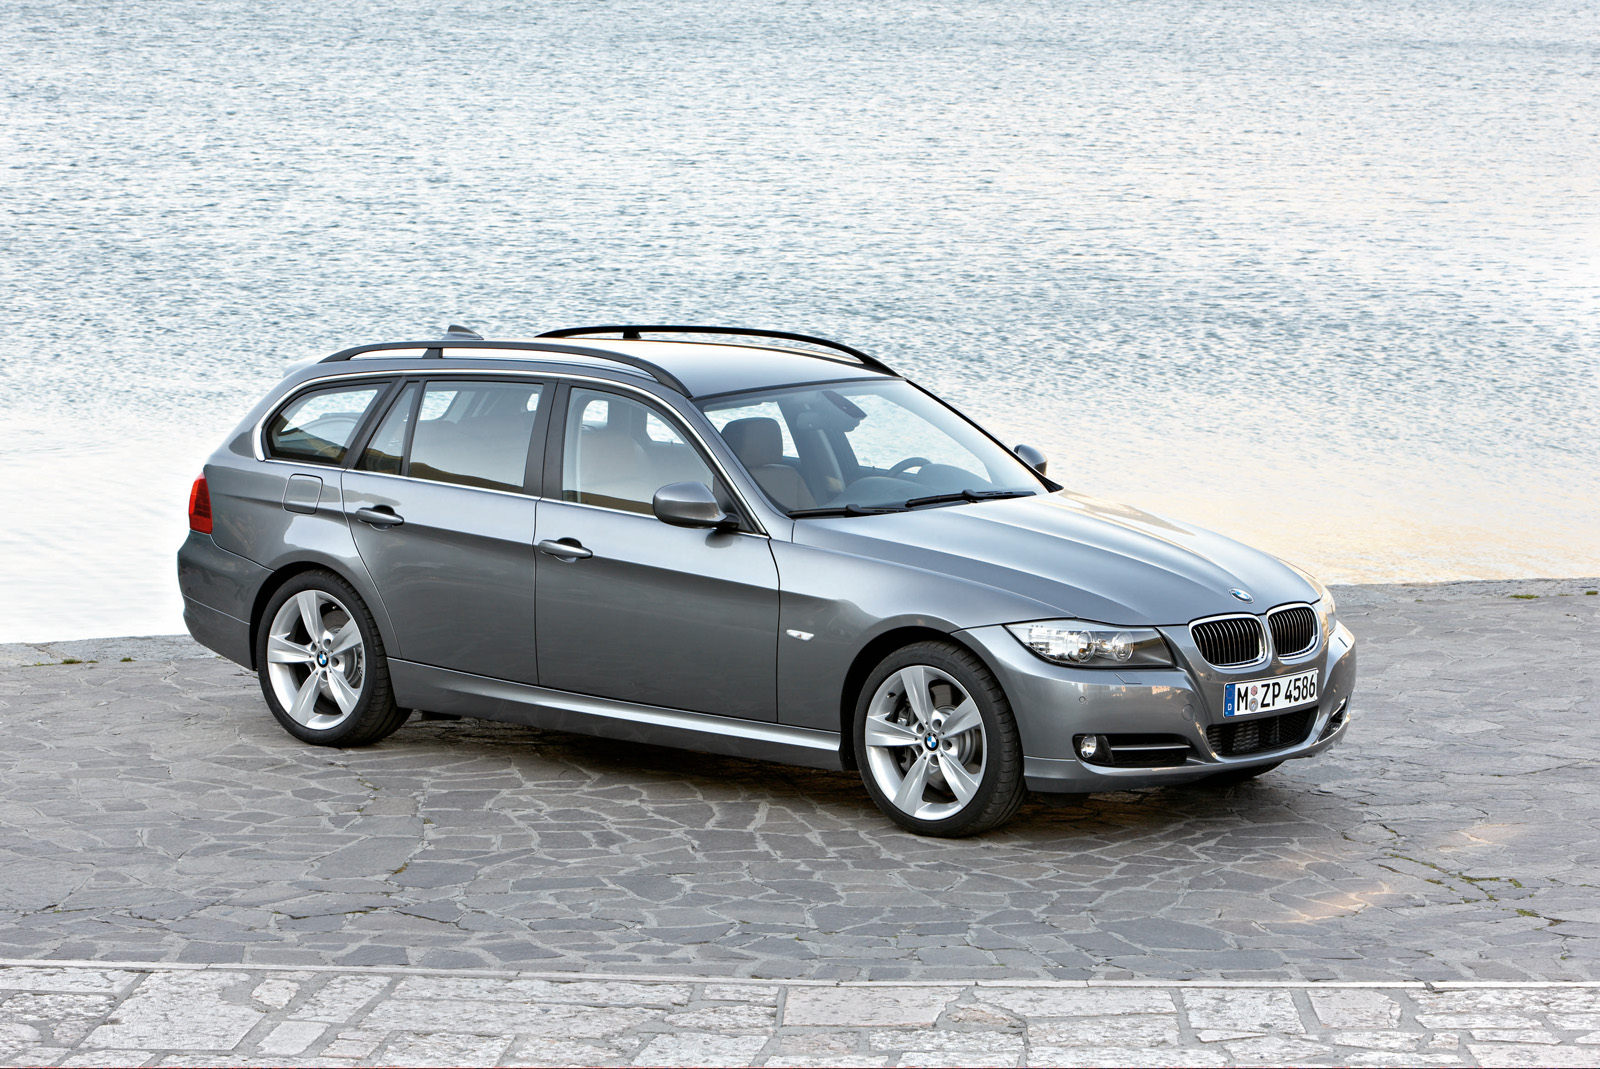 2009 Bmw 3 Series Bmw Auto Cars